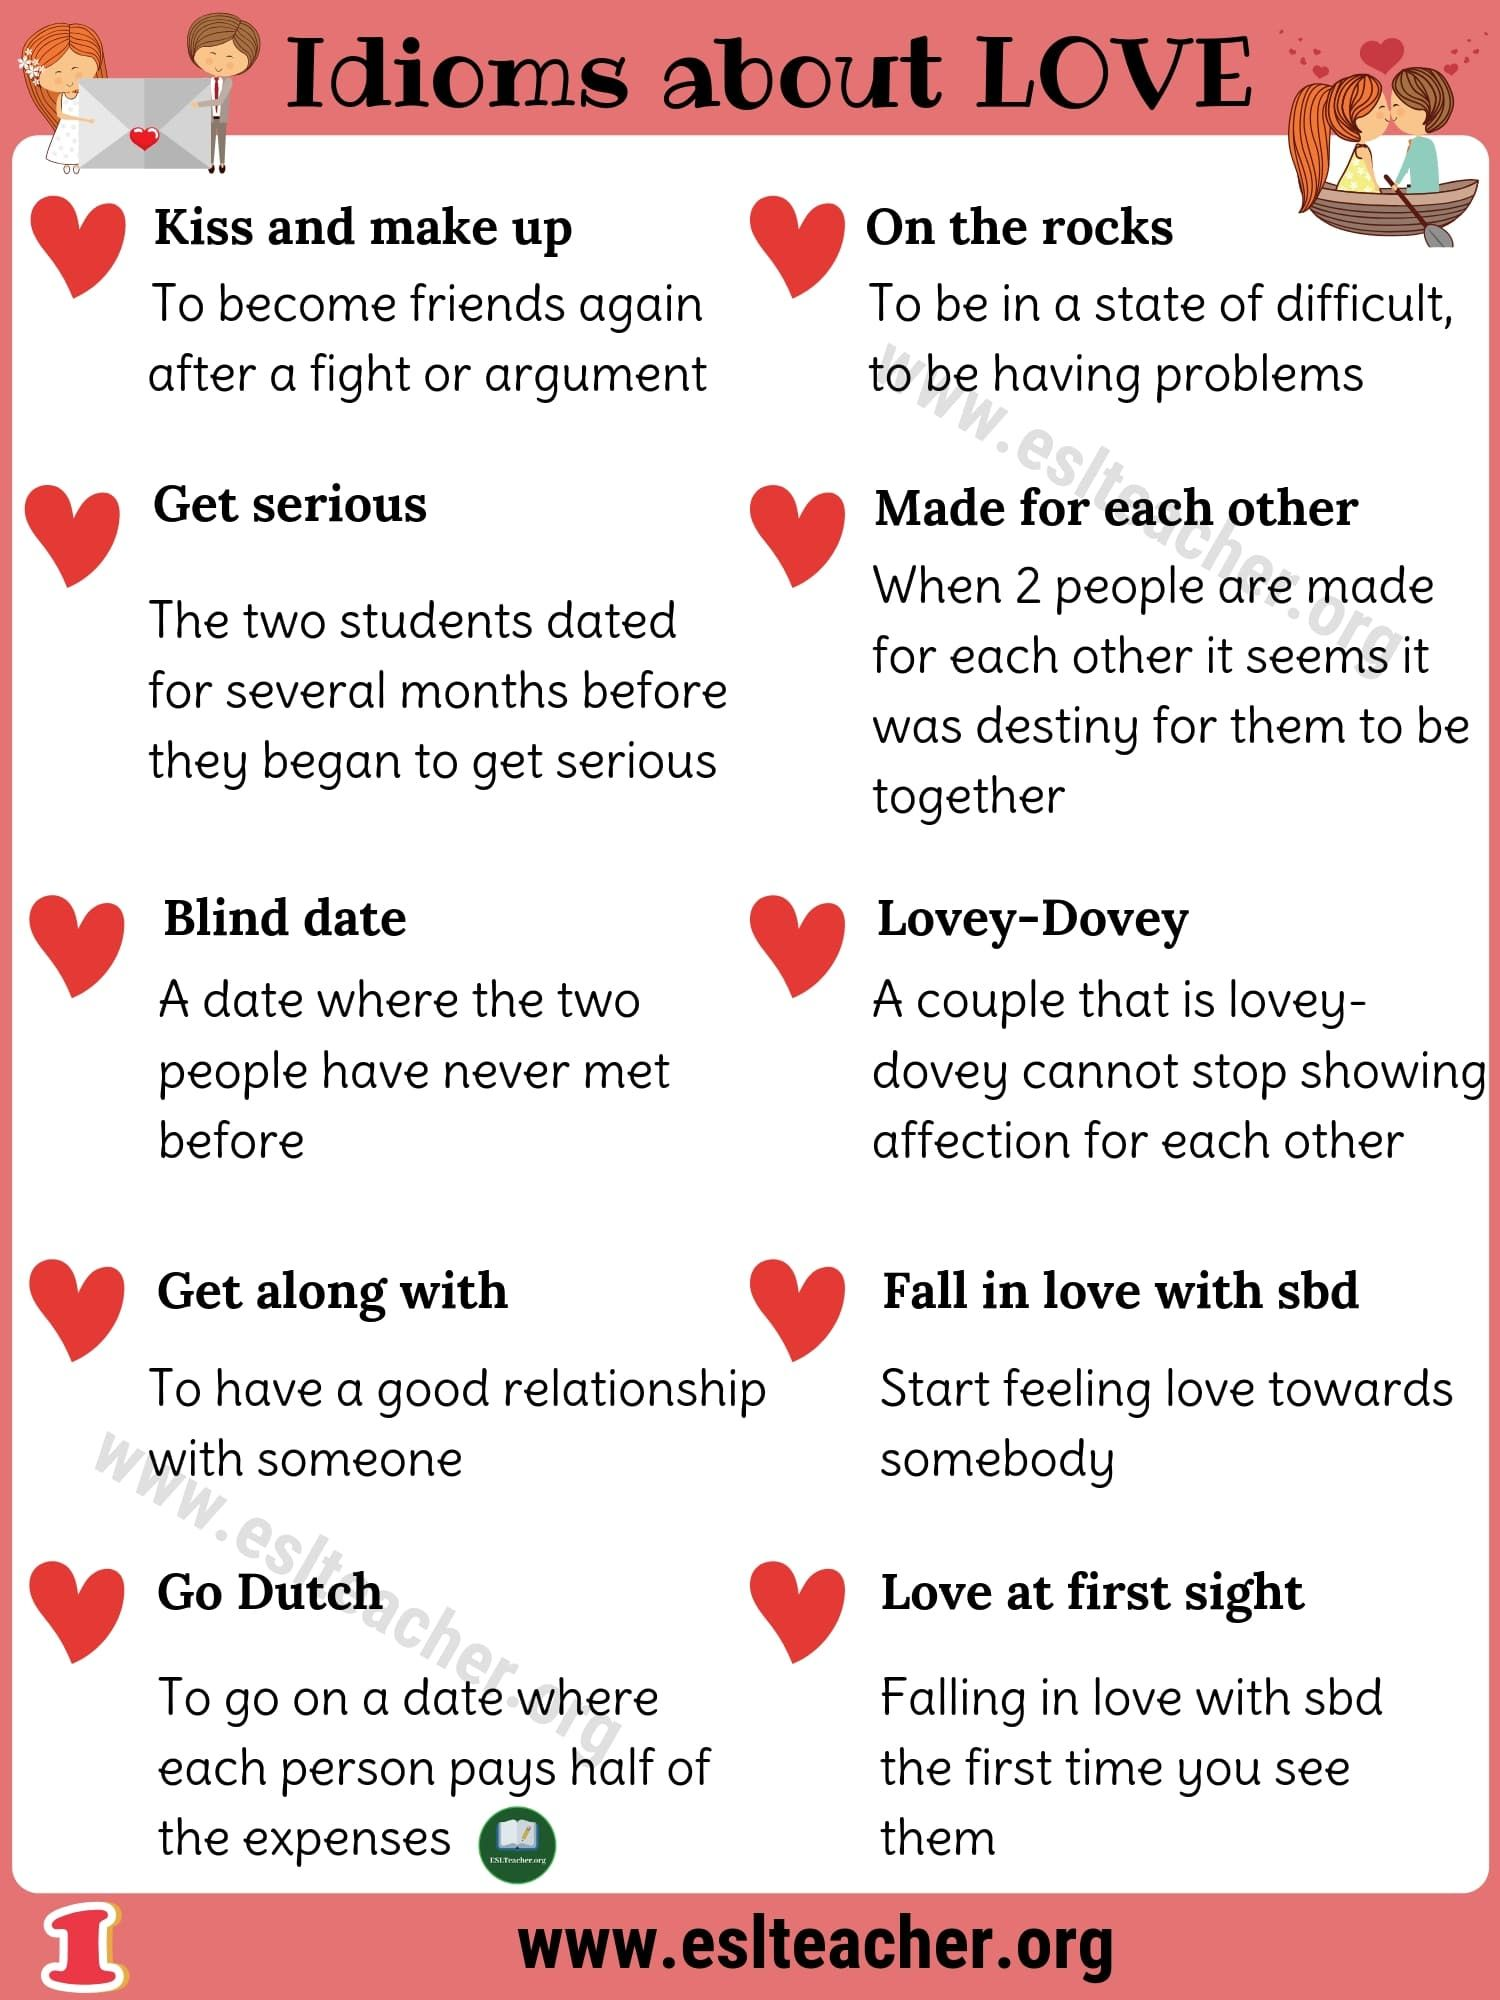 Heart Idioms Worksheet   Printable Worksheets and Activities for Teachers [ 2000 x 1500 Pixel ]